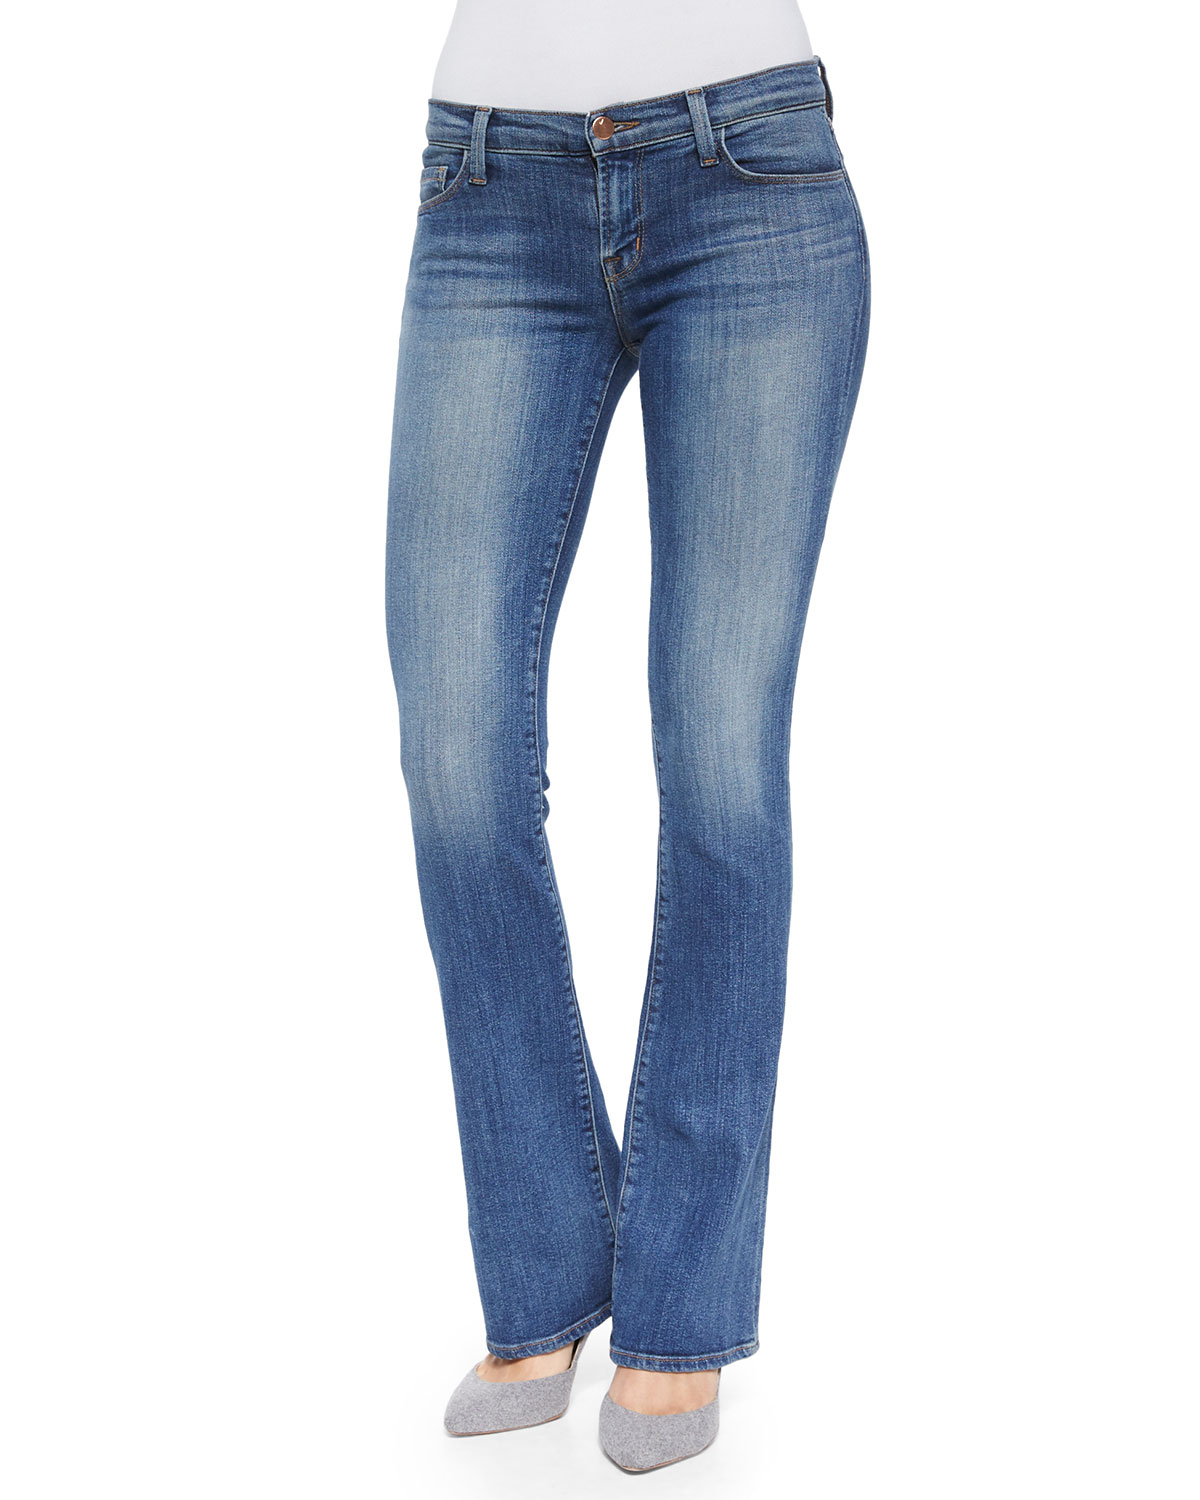 Top 10 Best Selling Jeans Brands 1. Levis Strauss & Co. Levis is an American clothing company which established in It is the top jeans brand and youth is very crazy about this brand.